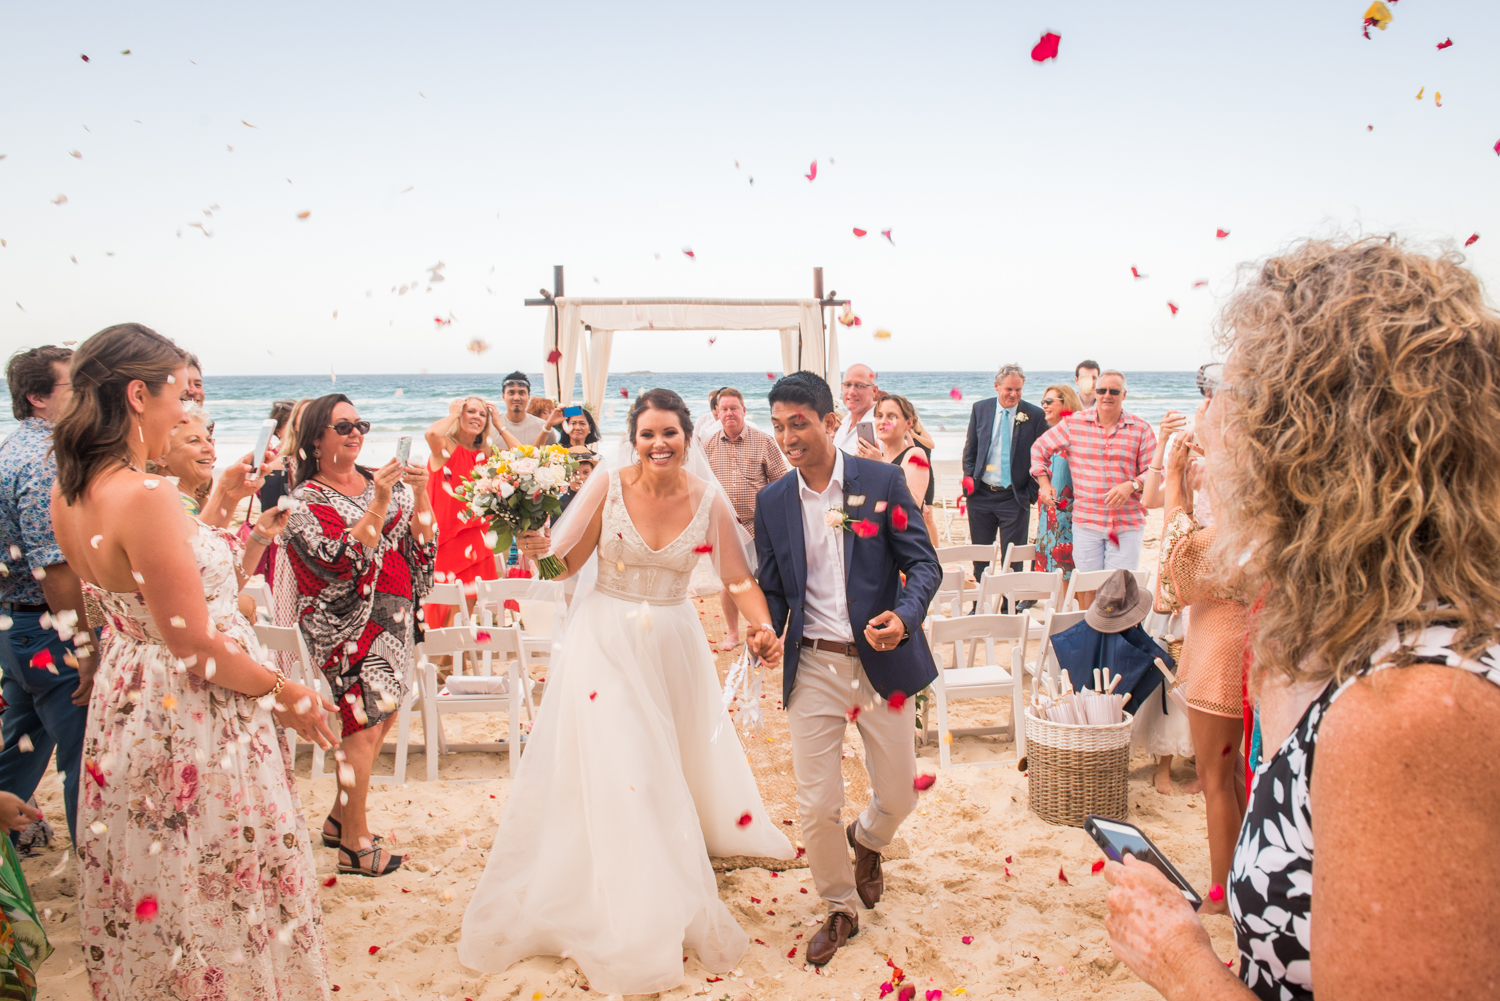 walking up the aisle on the beach